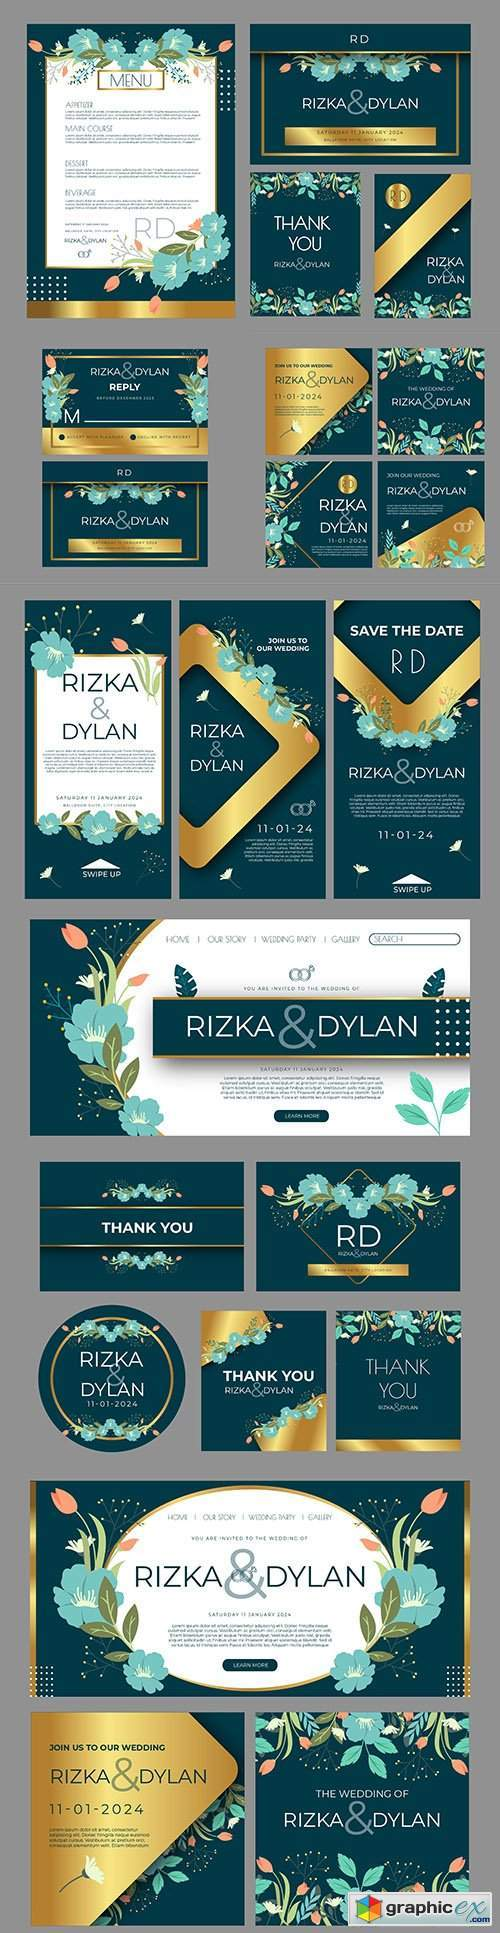 Flower wedding posts on instagram and stationery